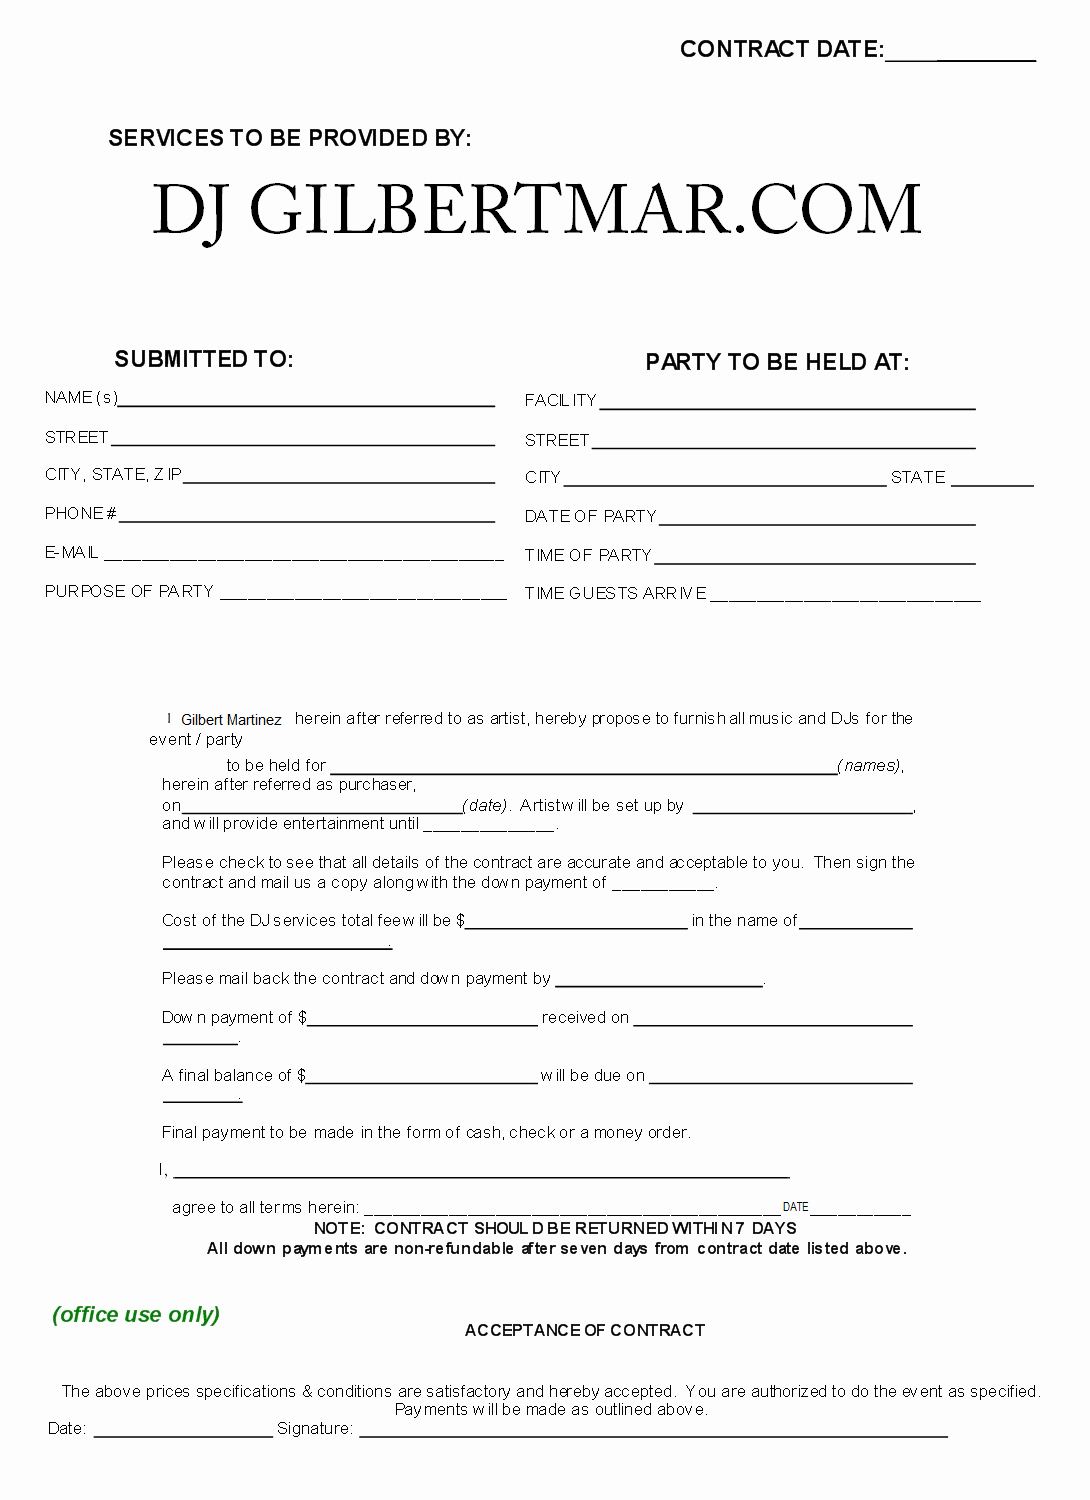 Wedding Dj Contract Template Fresh Dj Contract Template